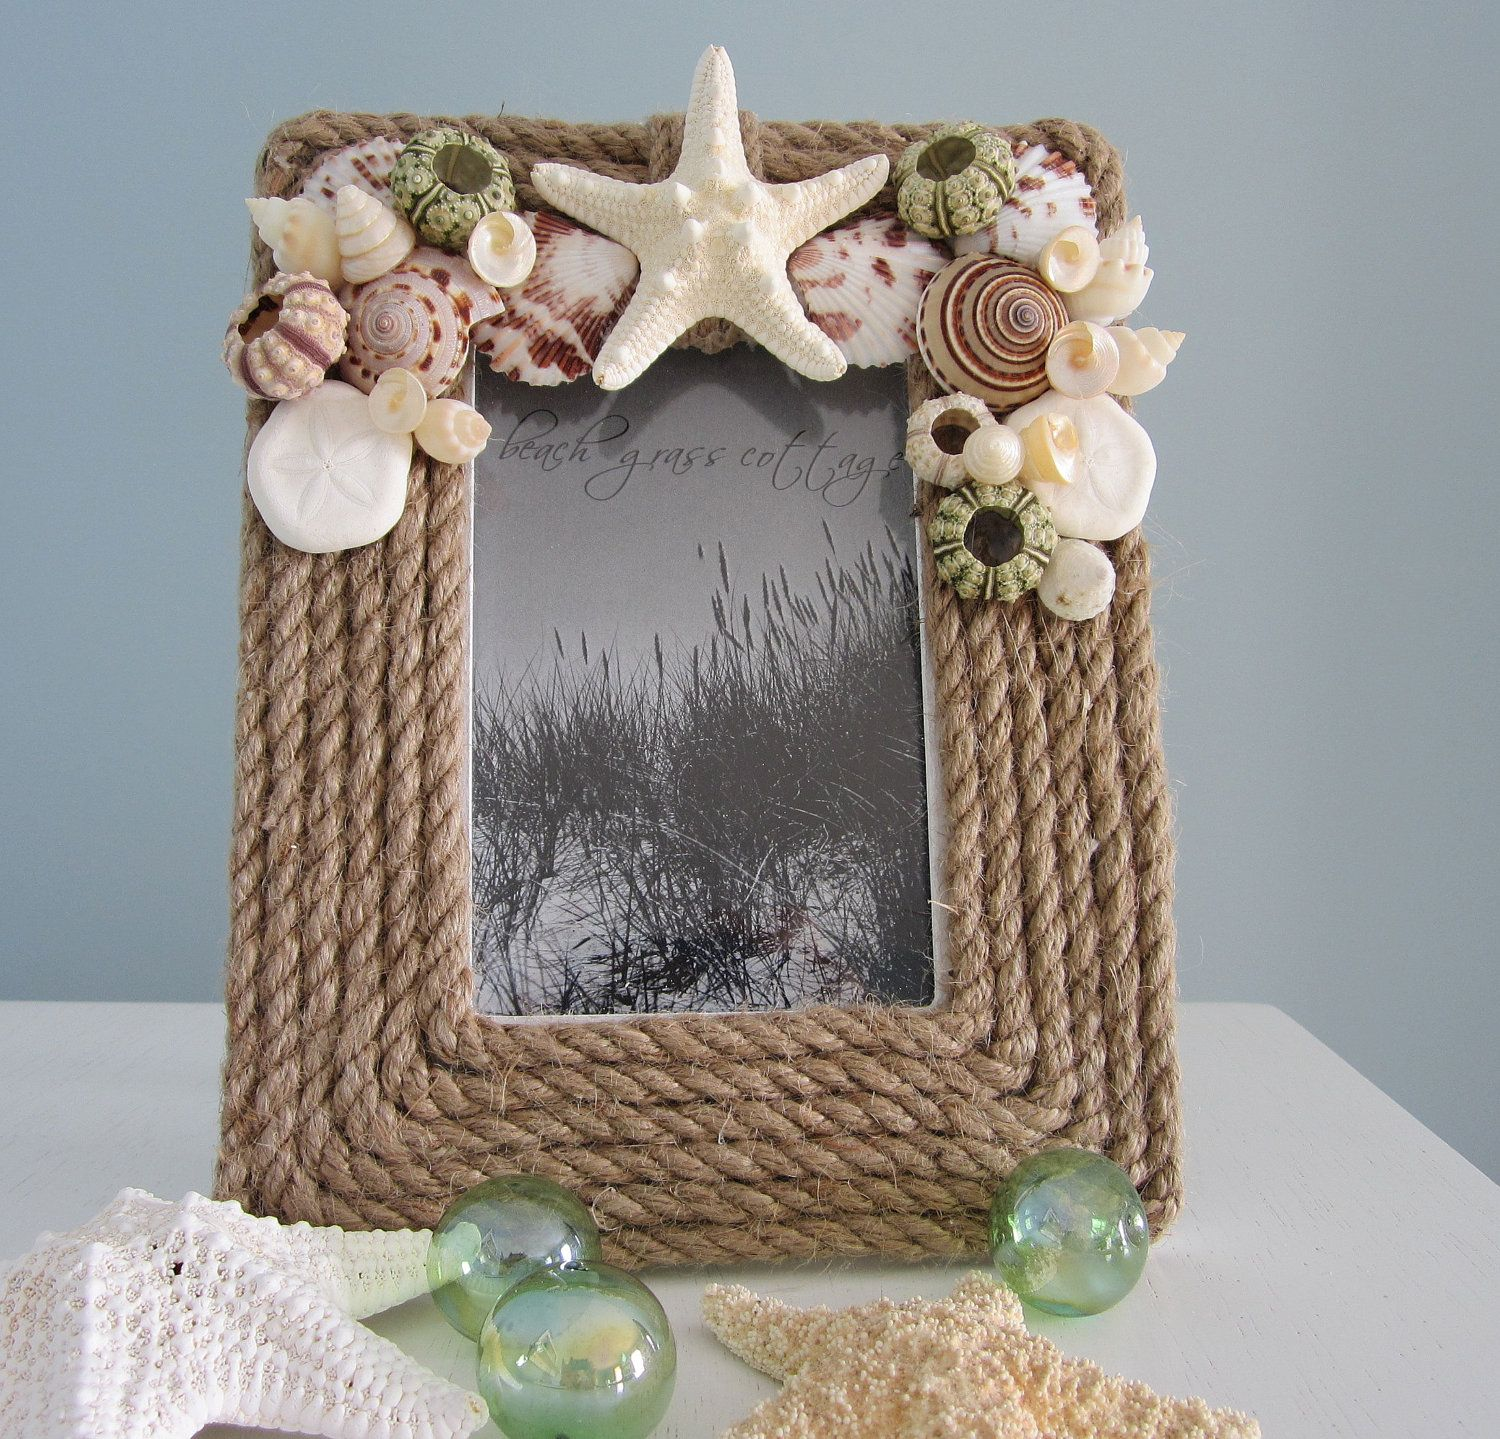 Nautical Decor Rope Frame Beach Shell W Seashells Starfish 5x7 Brown